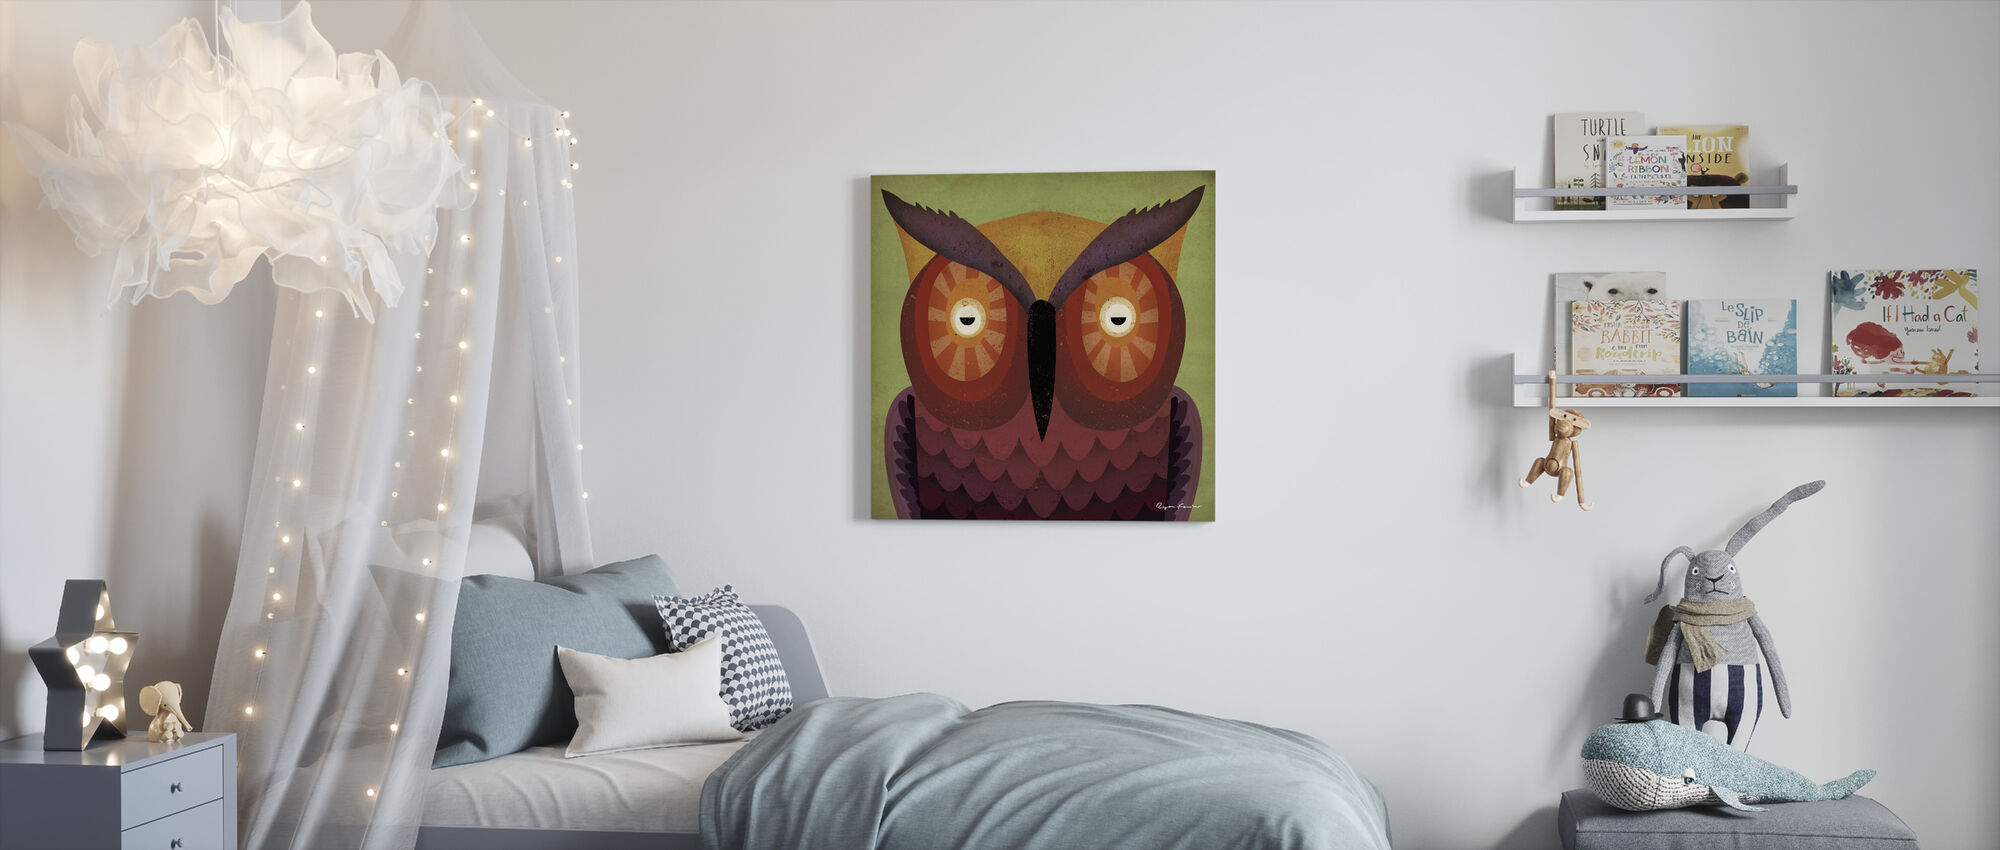 Ryan Fowler - Uil - Canvas print - Kinderkamer